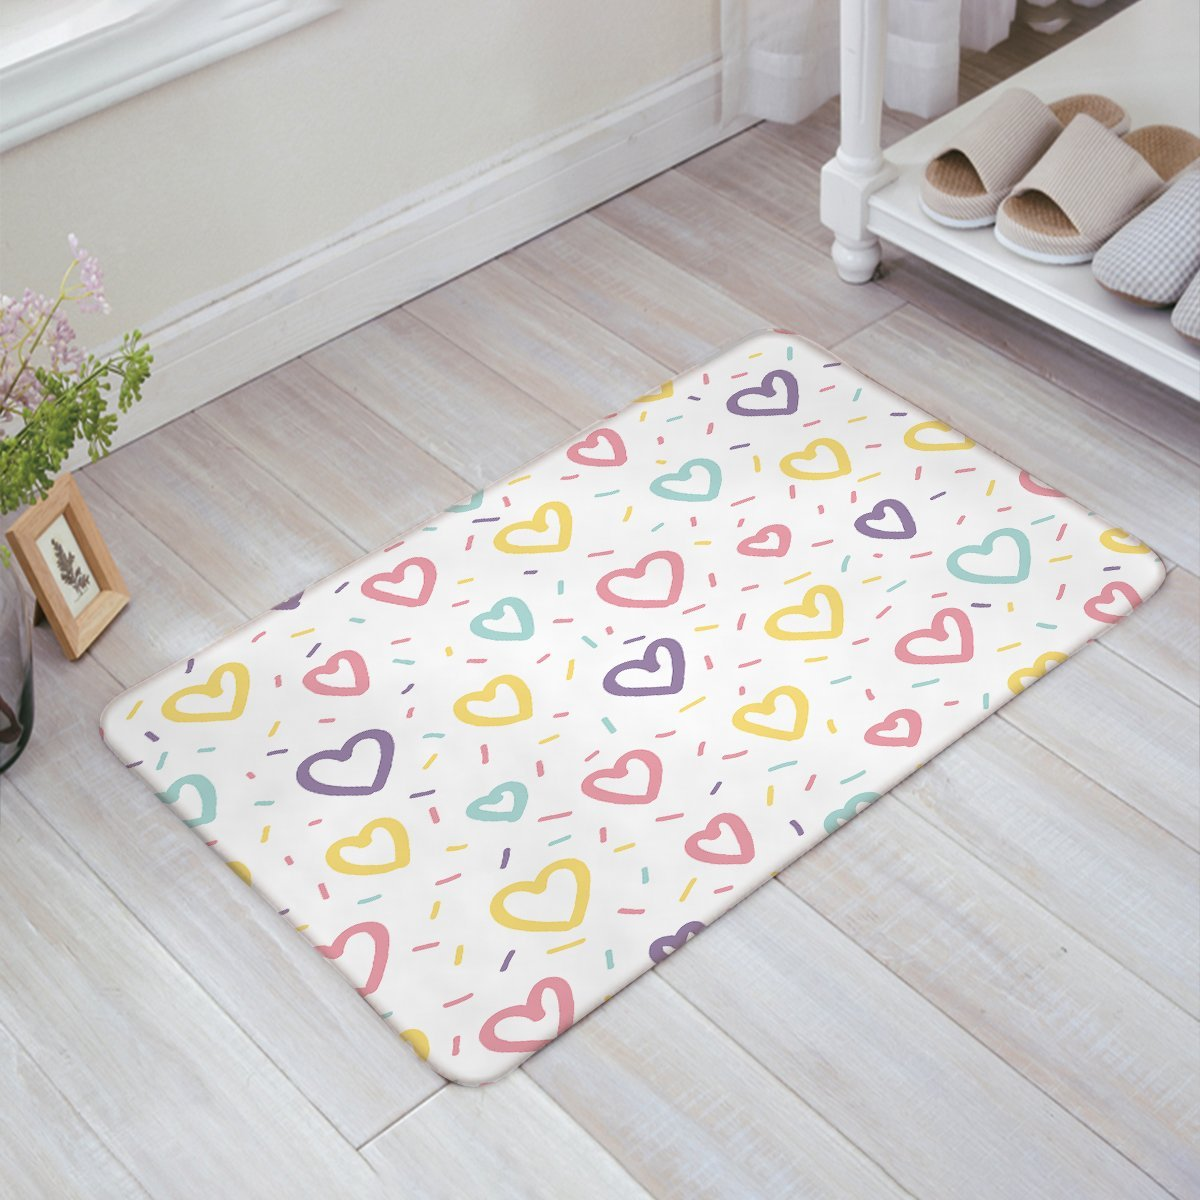 of for time door just easy best mats outdoor spring x decorating mat ideas glamour welcome in photo